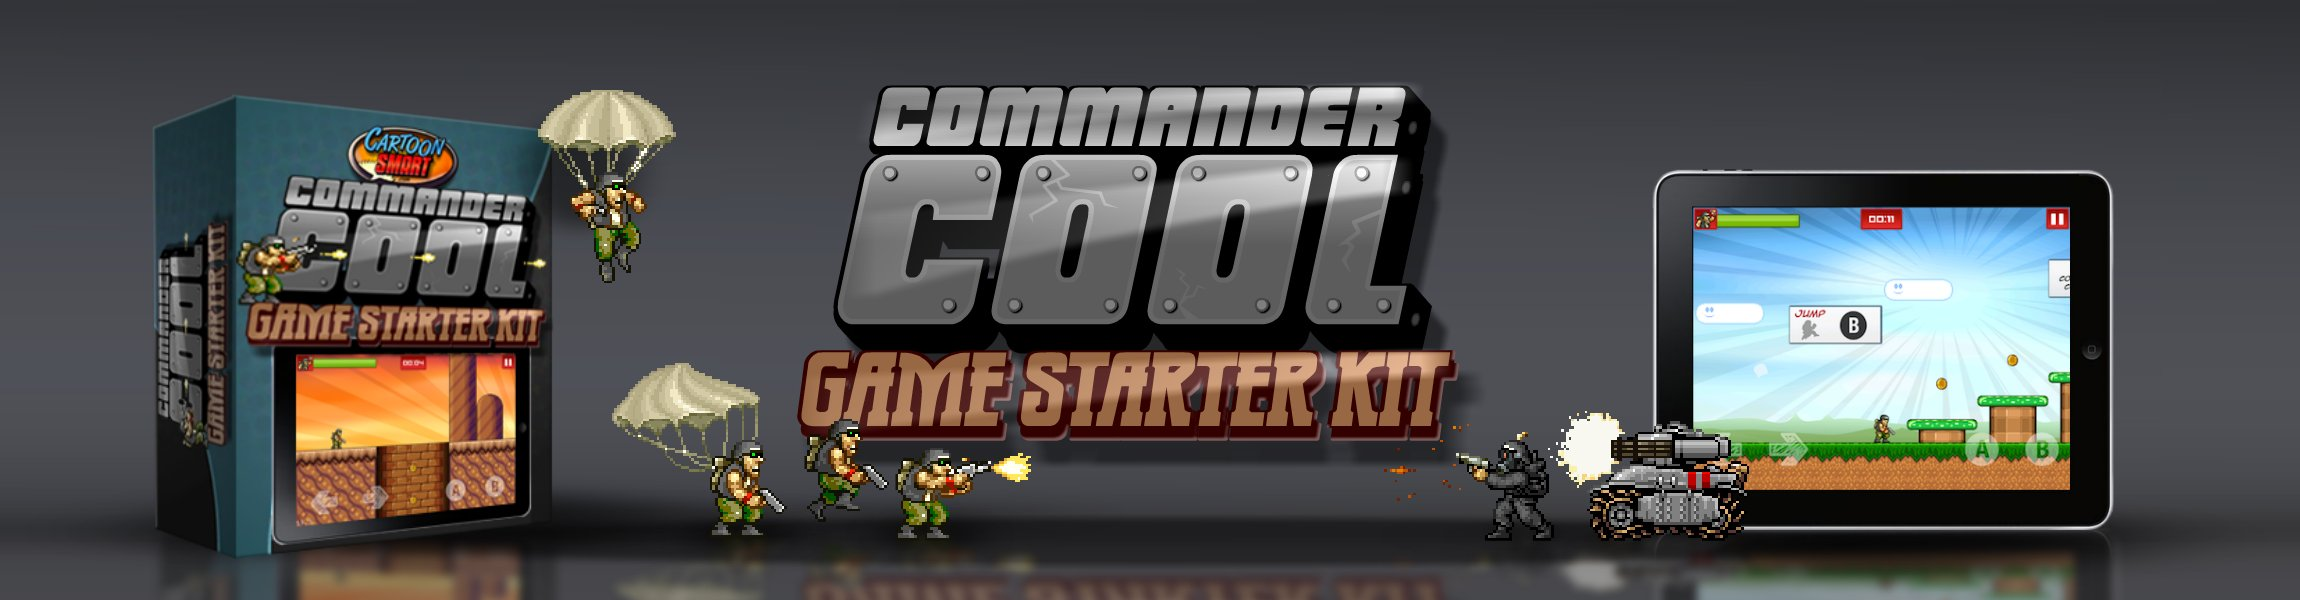 Click to view Commander Cool iOS/Mac Starter Kit